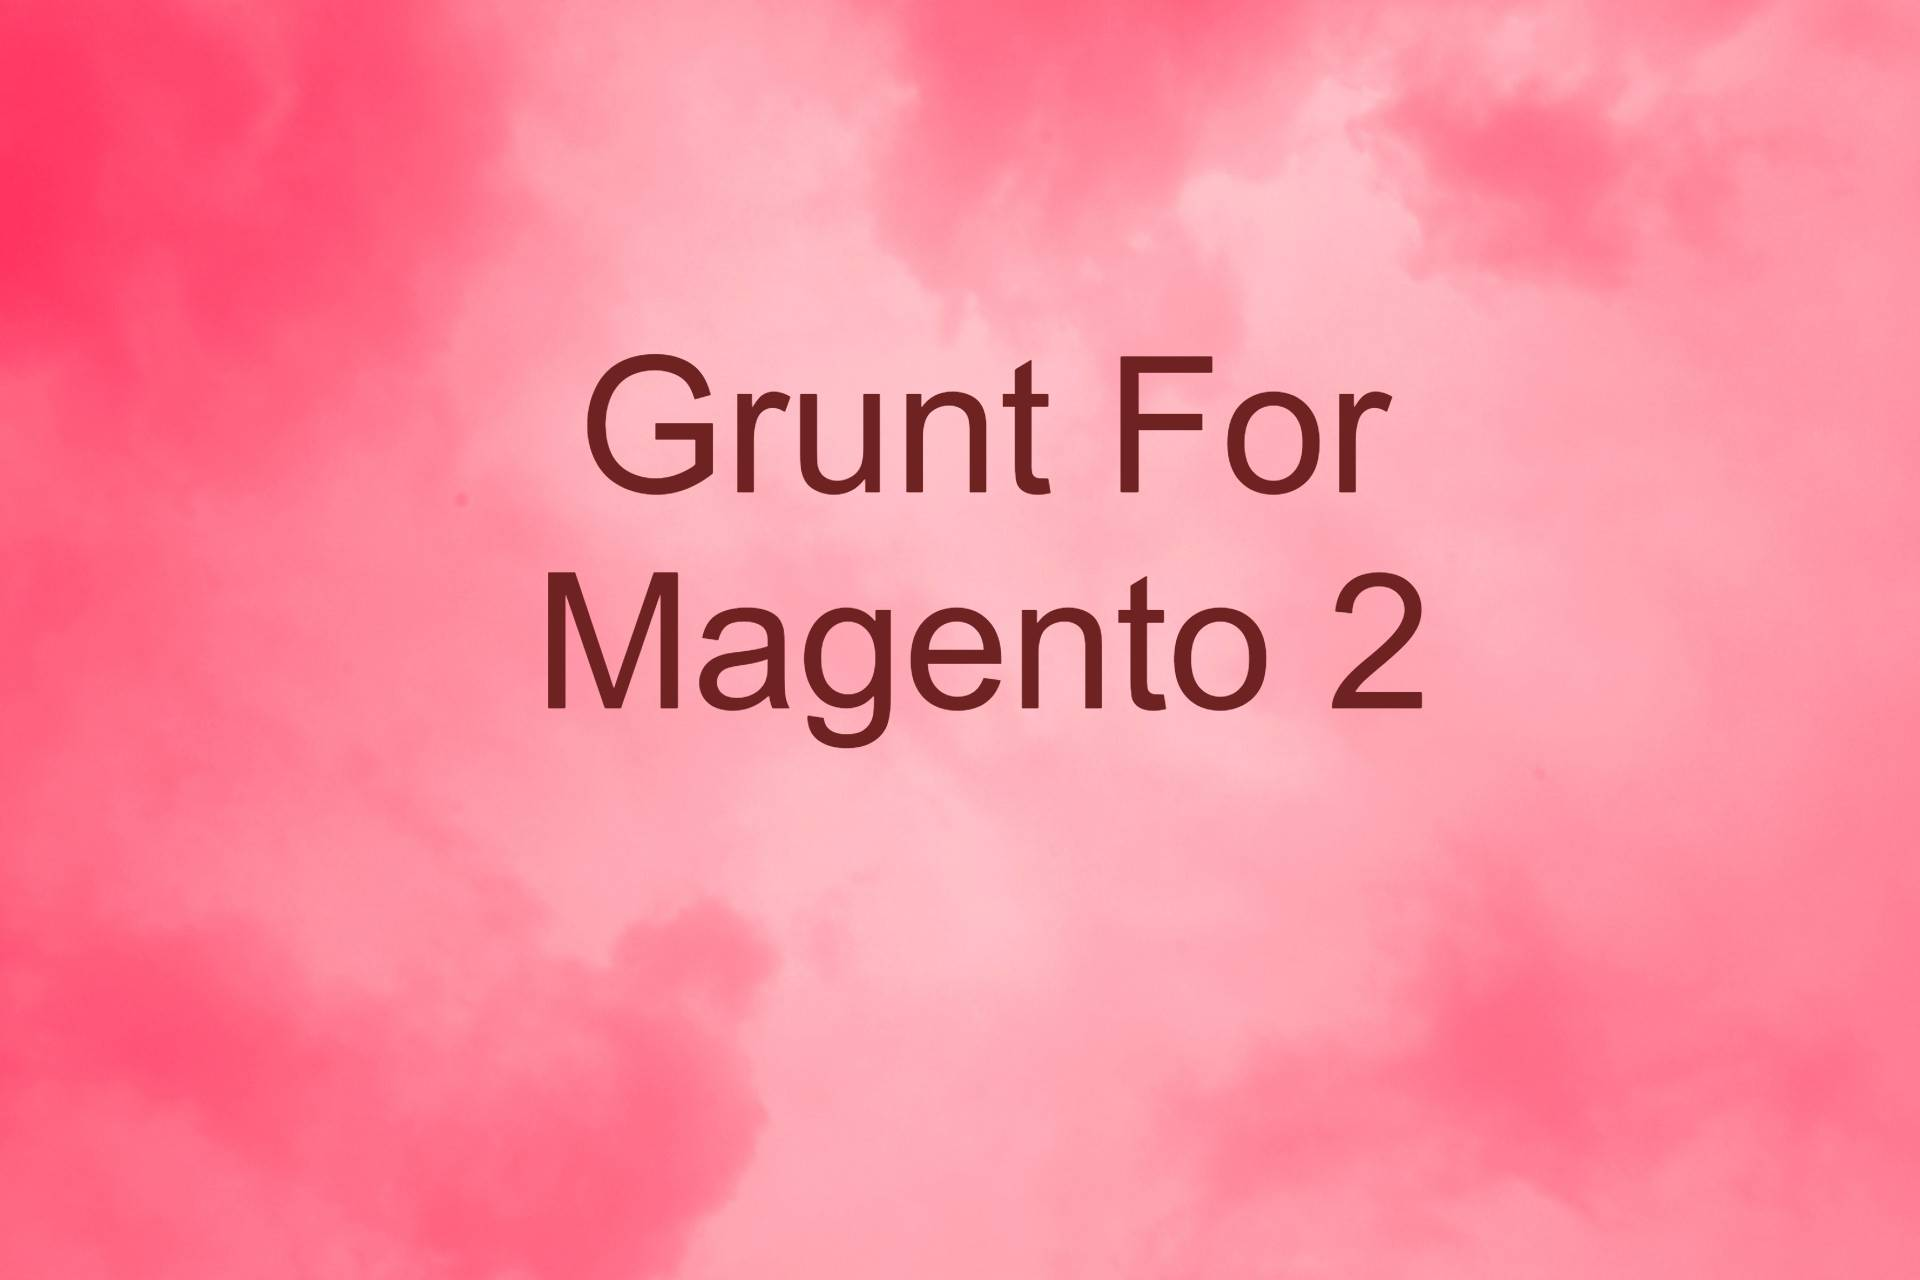 Grunt For Magento 2